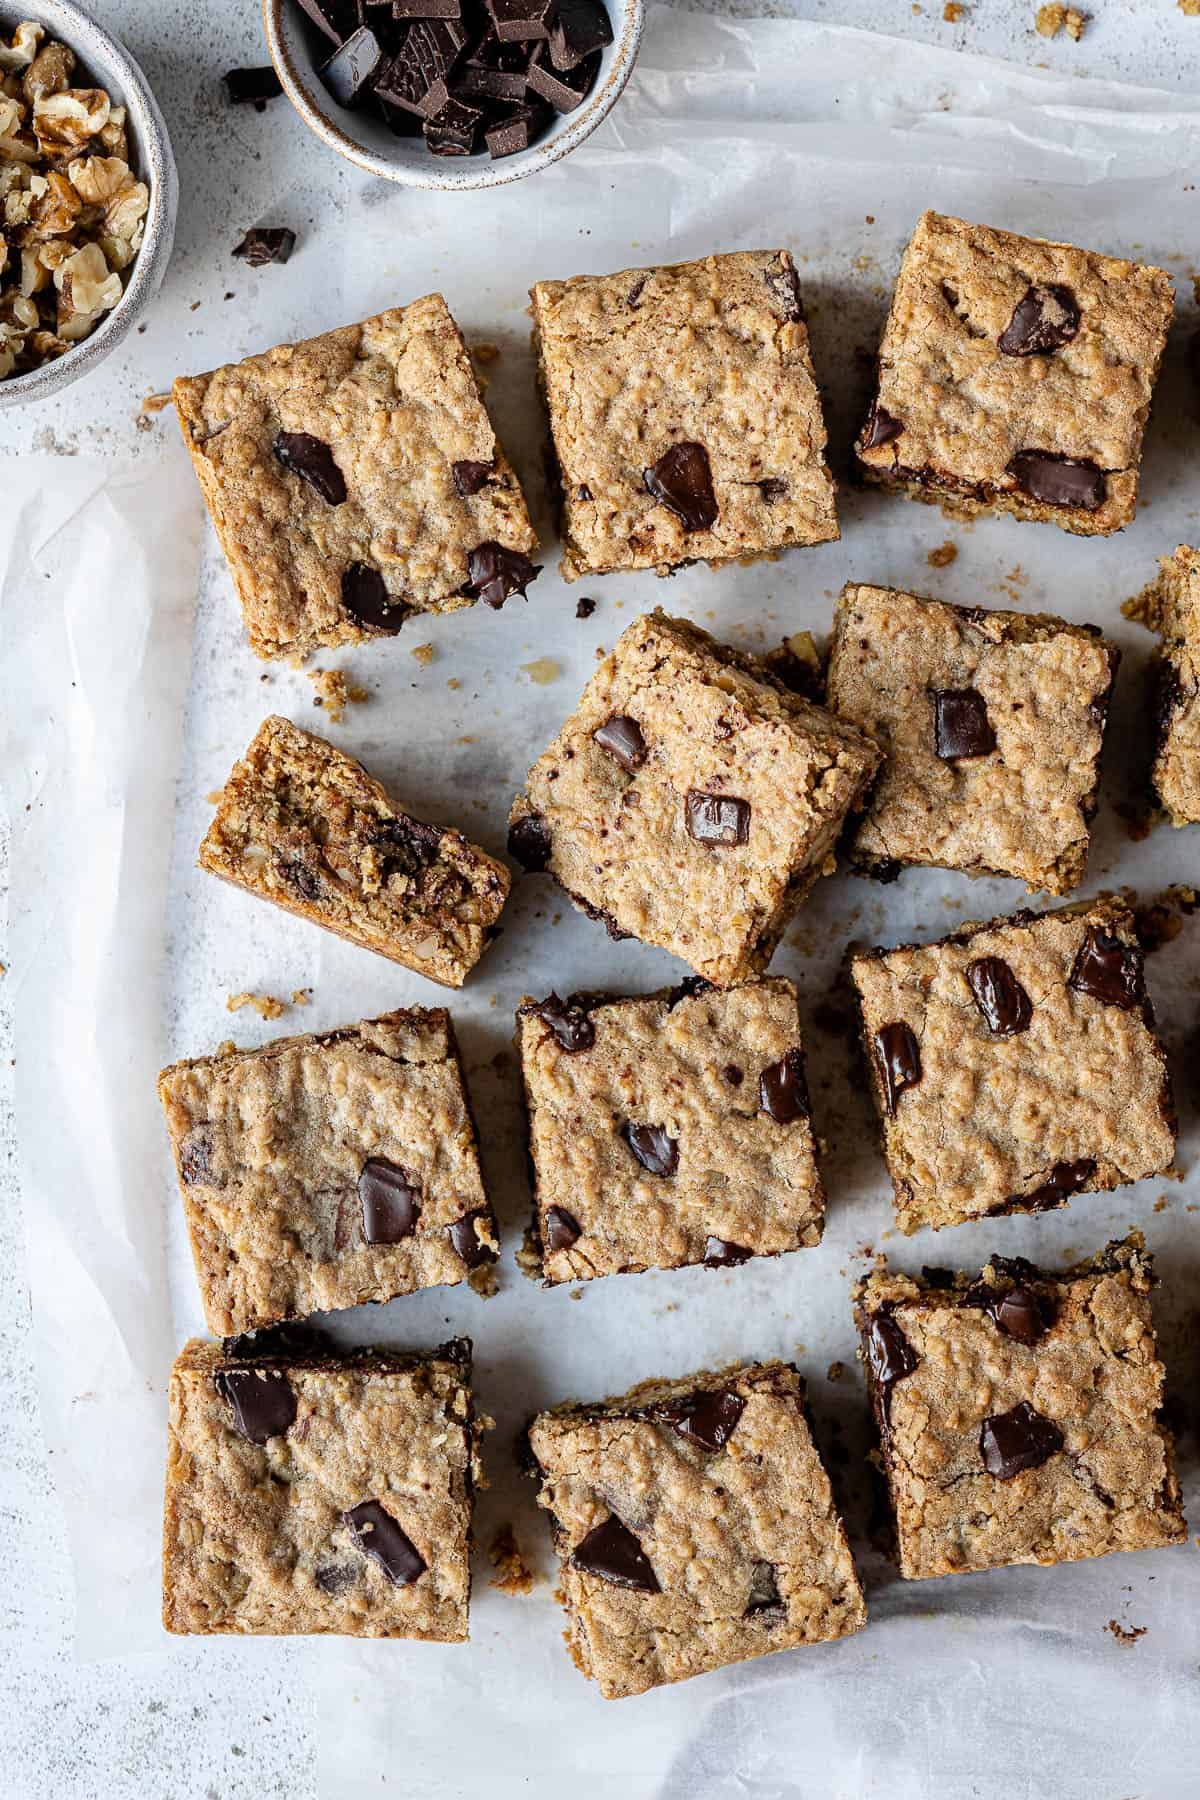 Vegan oatmeal cookie bars on a sheet of baking parchment with a bowl of walnuts and a bowl of chopped chocolate.